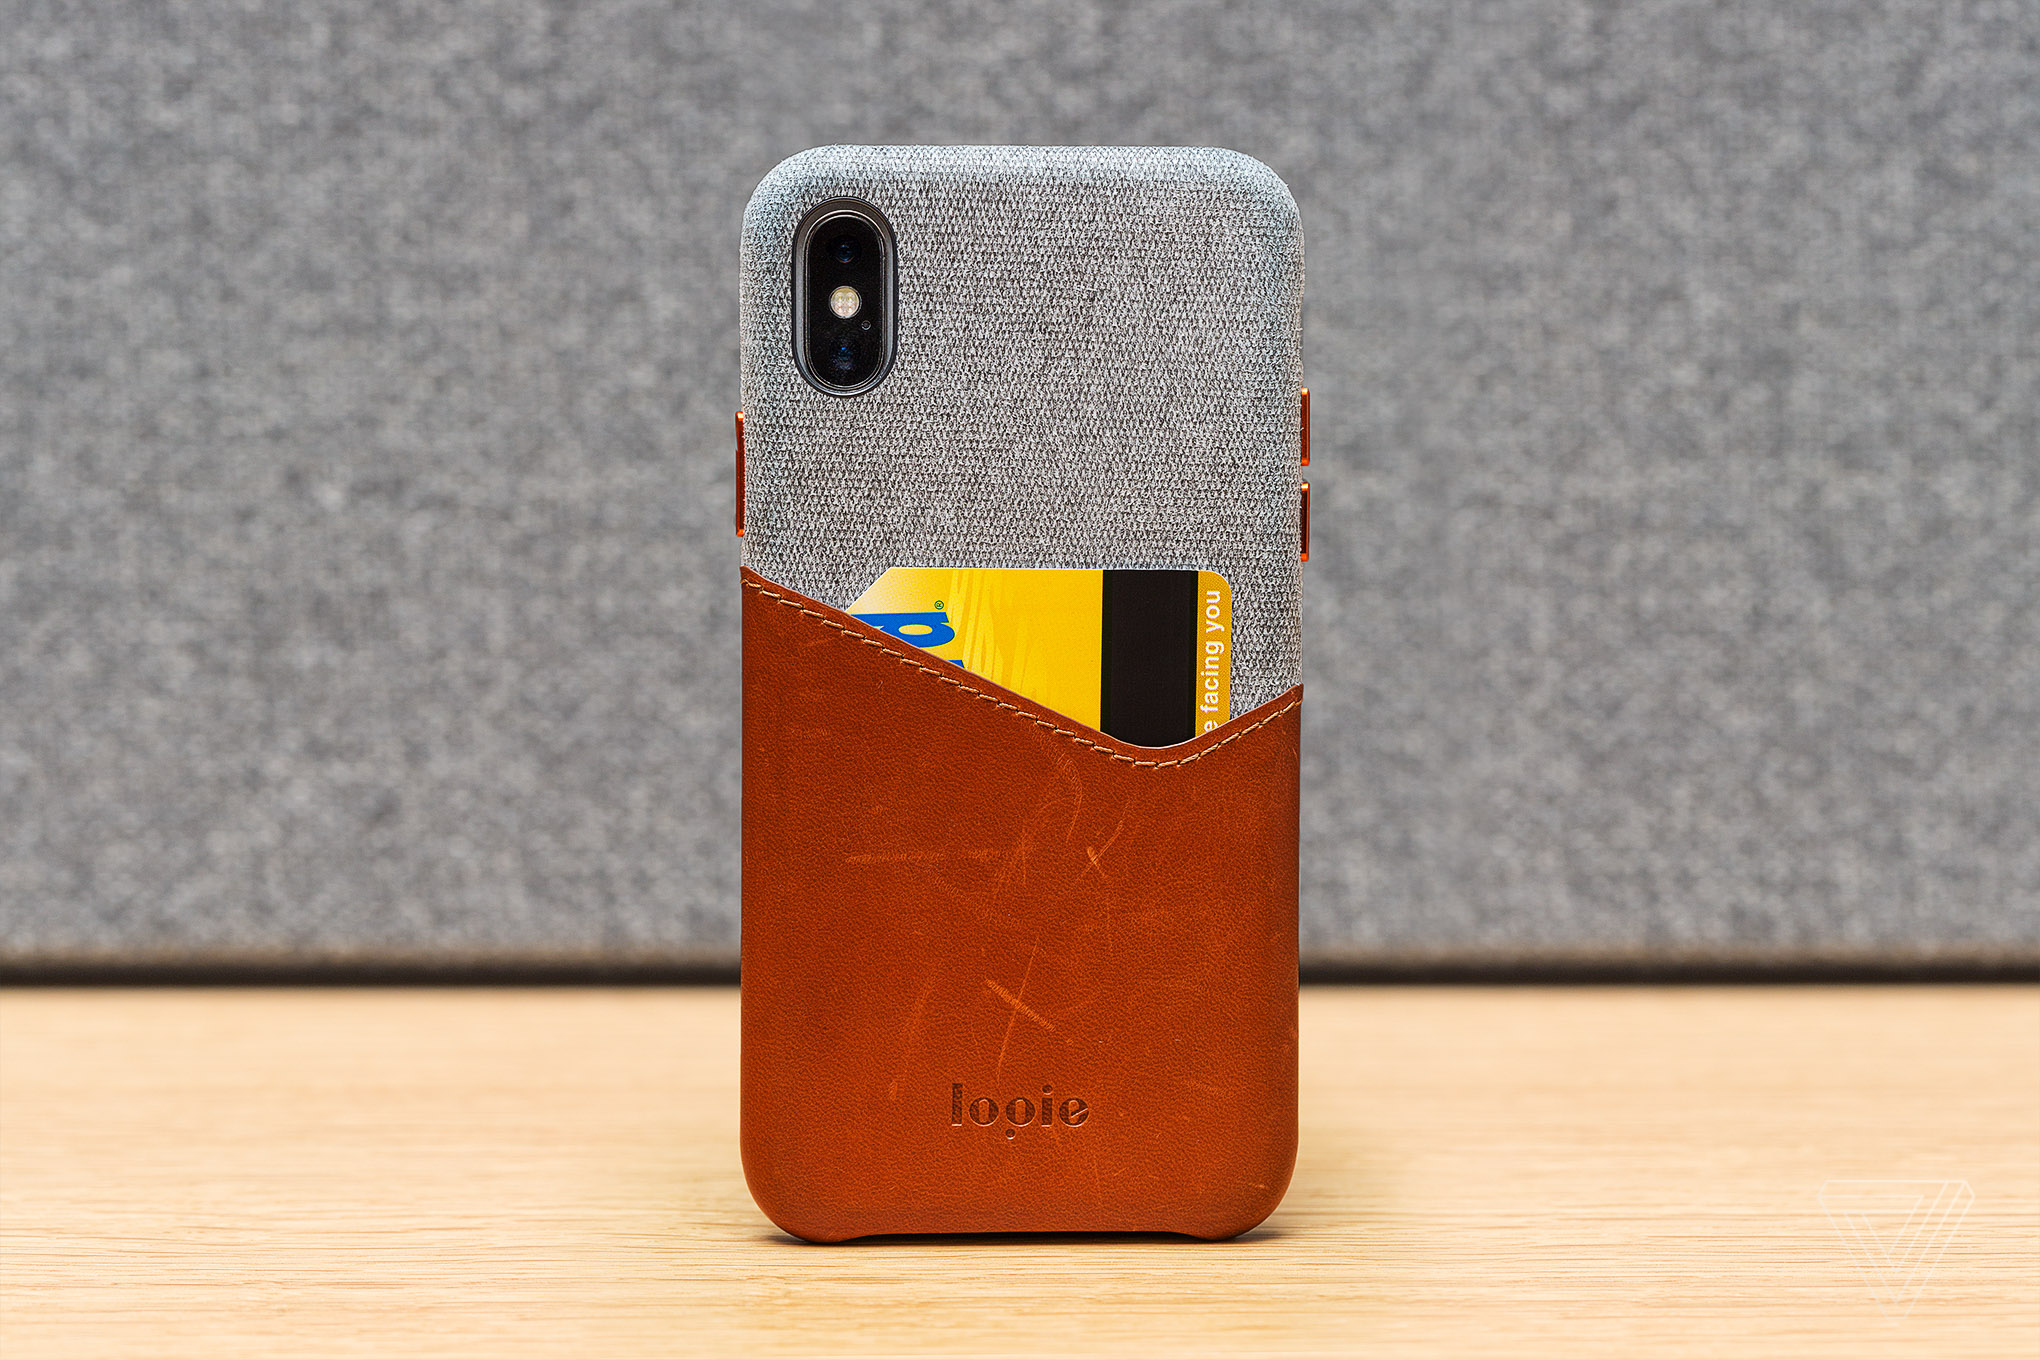 finding the best leather case for the iphone x the vergemy favorite leather case ironically isn\u0027t entirely leather the lopie sea island cotton series combines the cool fabric style on google\u0027s pixel 2 cases with